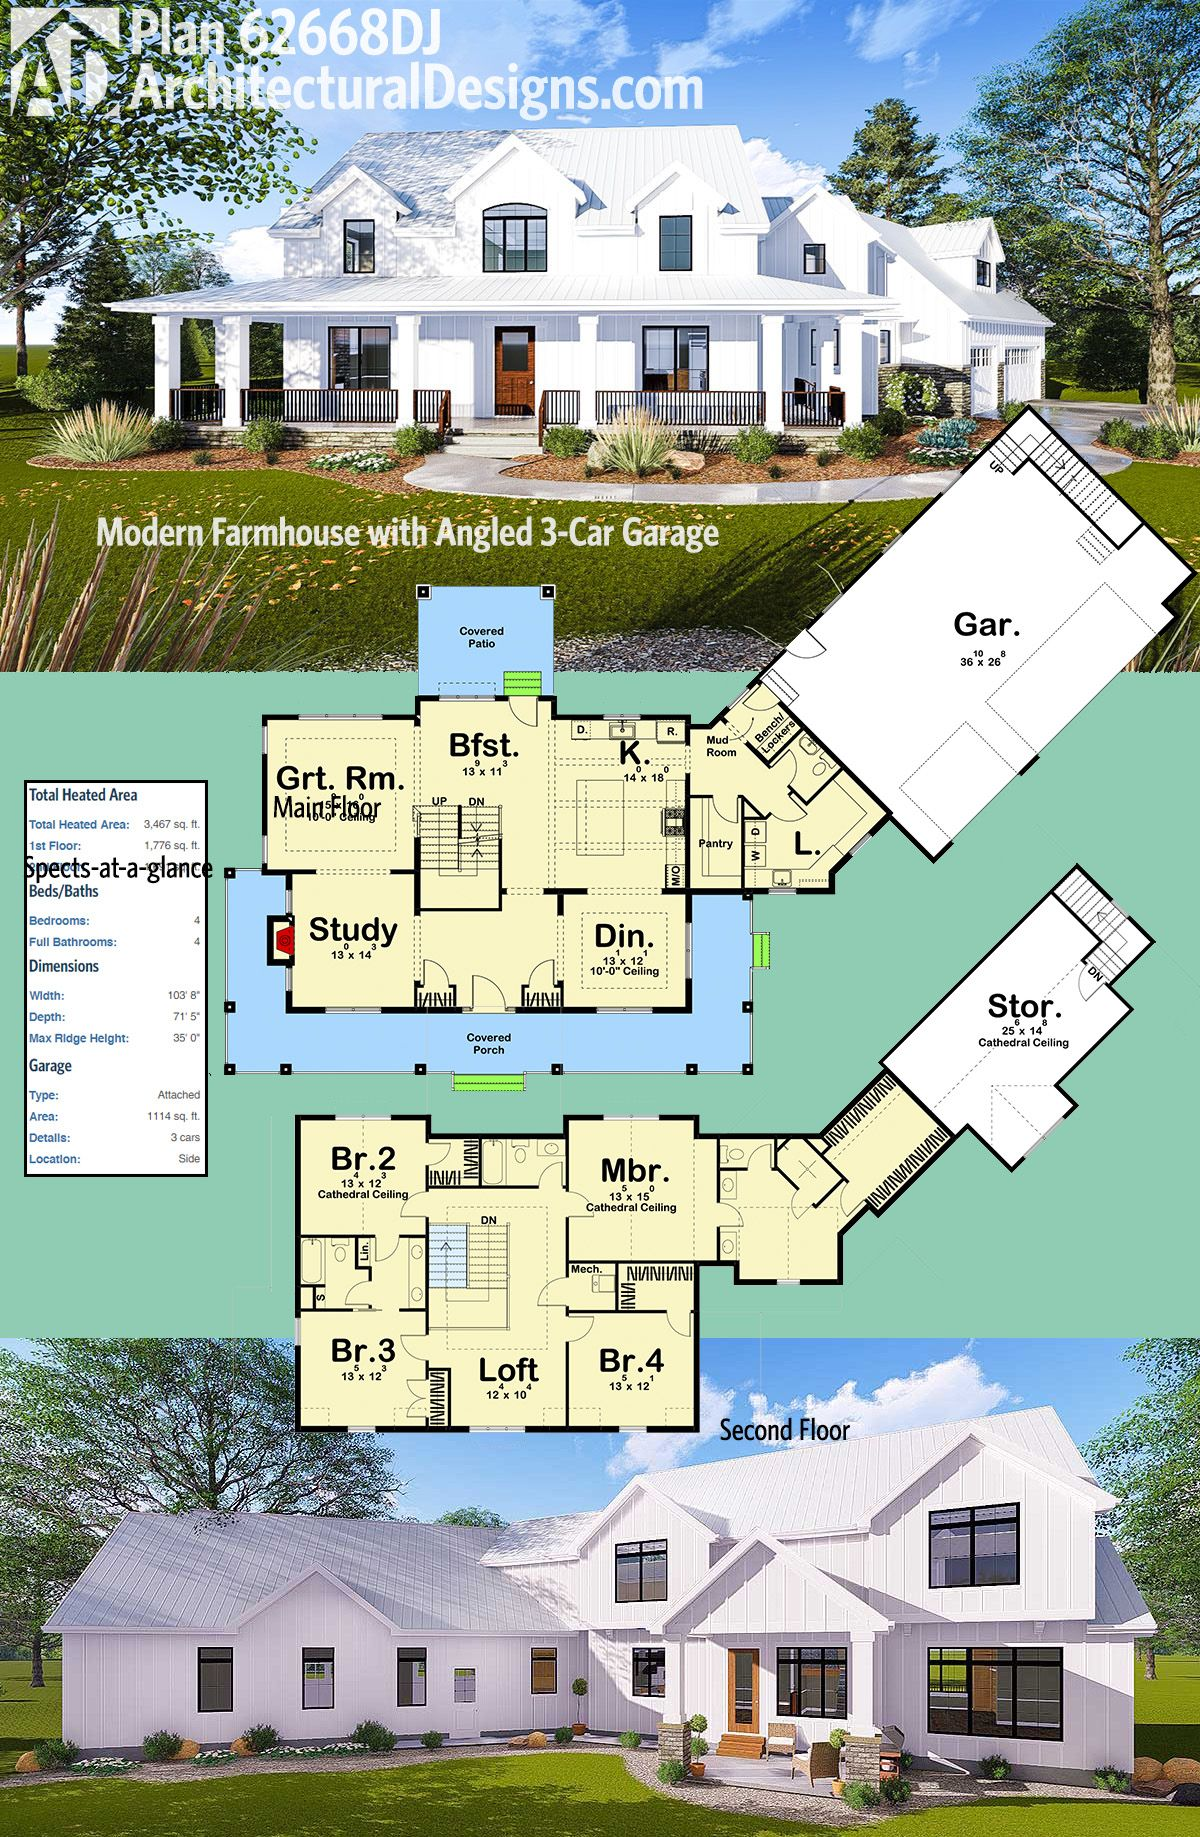 Introducing Architectural Designs Modern Farmhouse Plan 62668DJ! The Front  Porch Wraps Three Sides. An